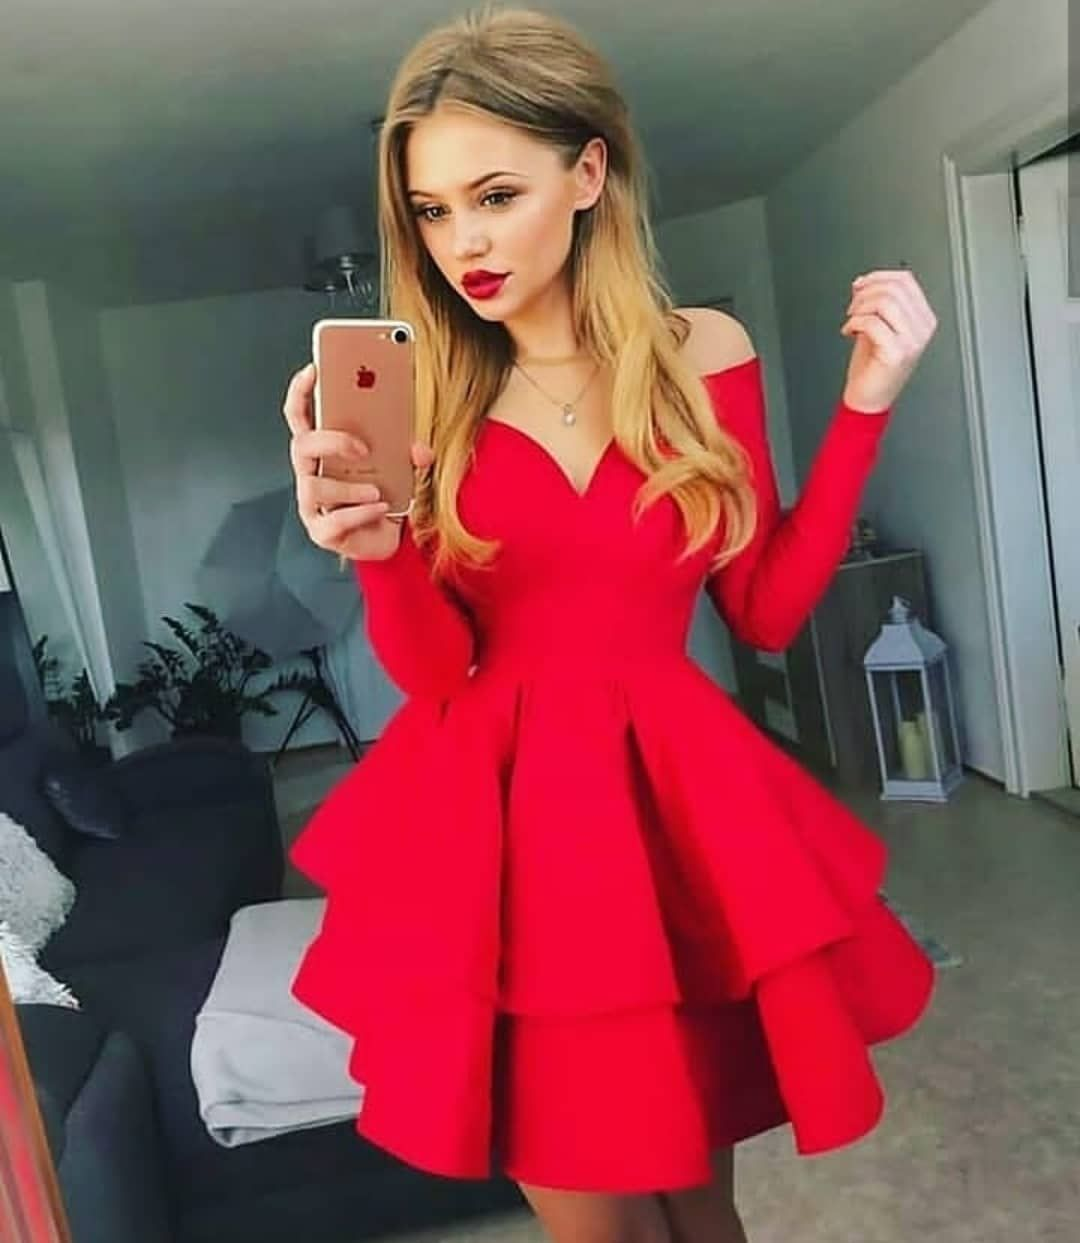 Red Homecoming Dress Long Sleeve Homecoming Dress Ruffles Homecoming Dress V Neck Hom Red Homecoming Dresses Party Dresses With Sleeves Mini Homecoming Dresses [ 1243 x 1080 Pixel ]